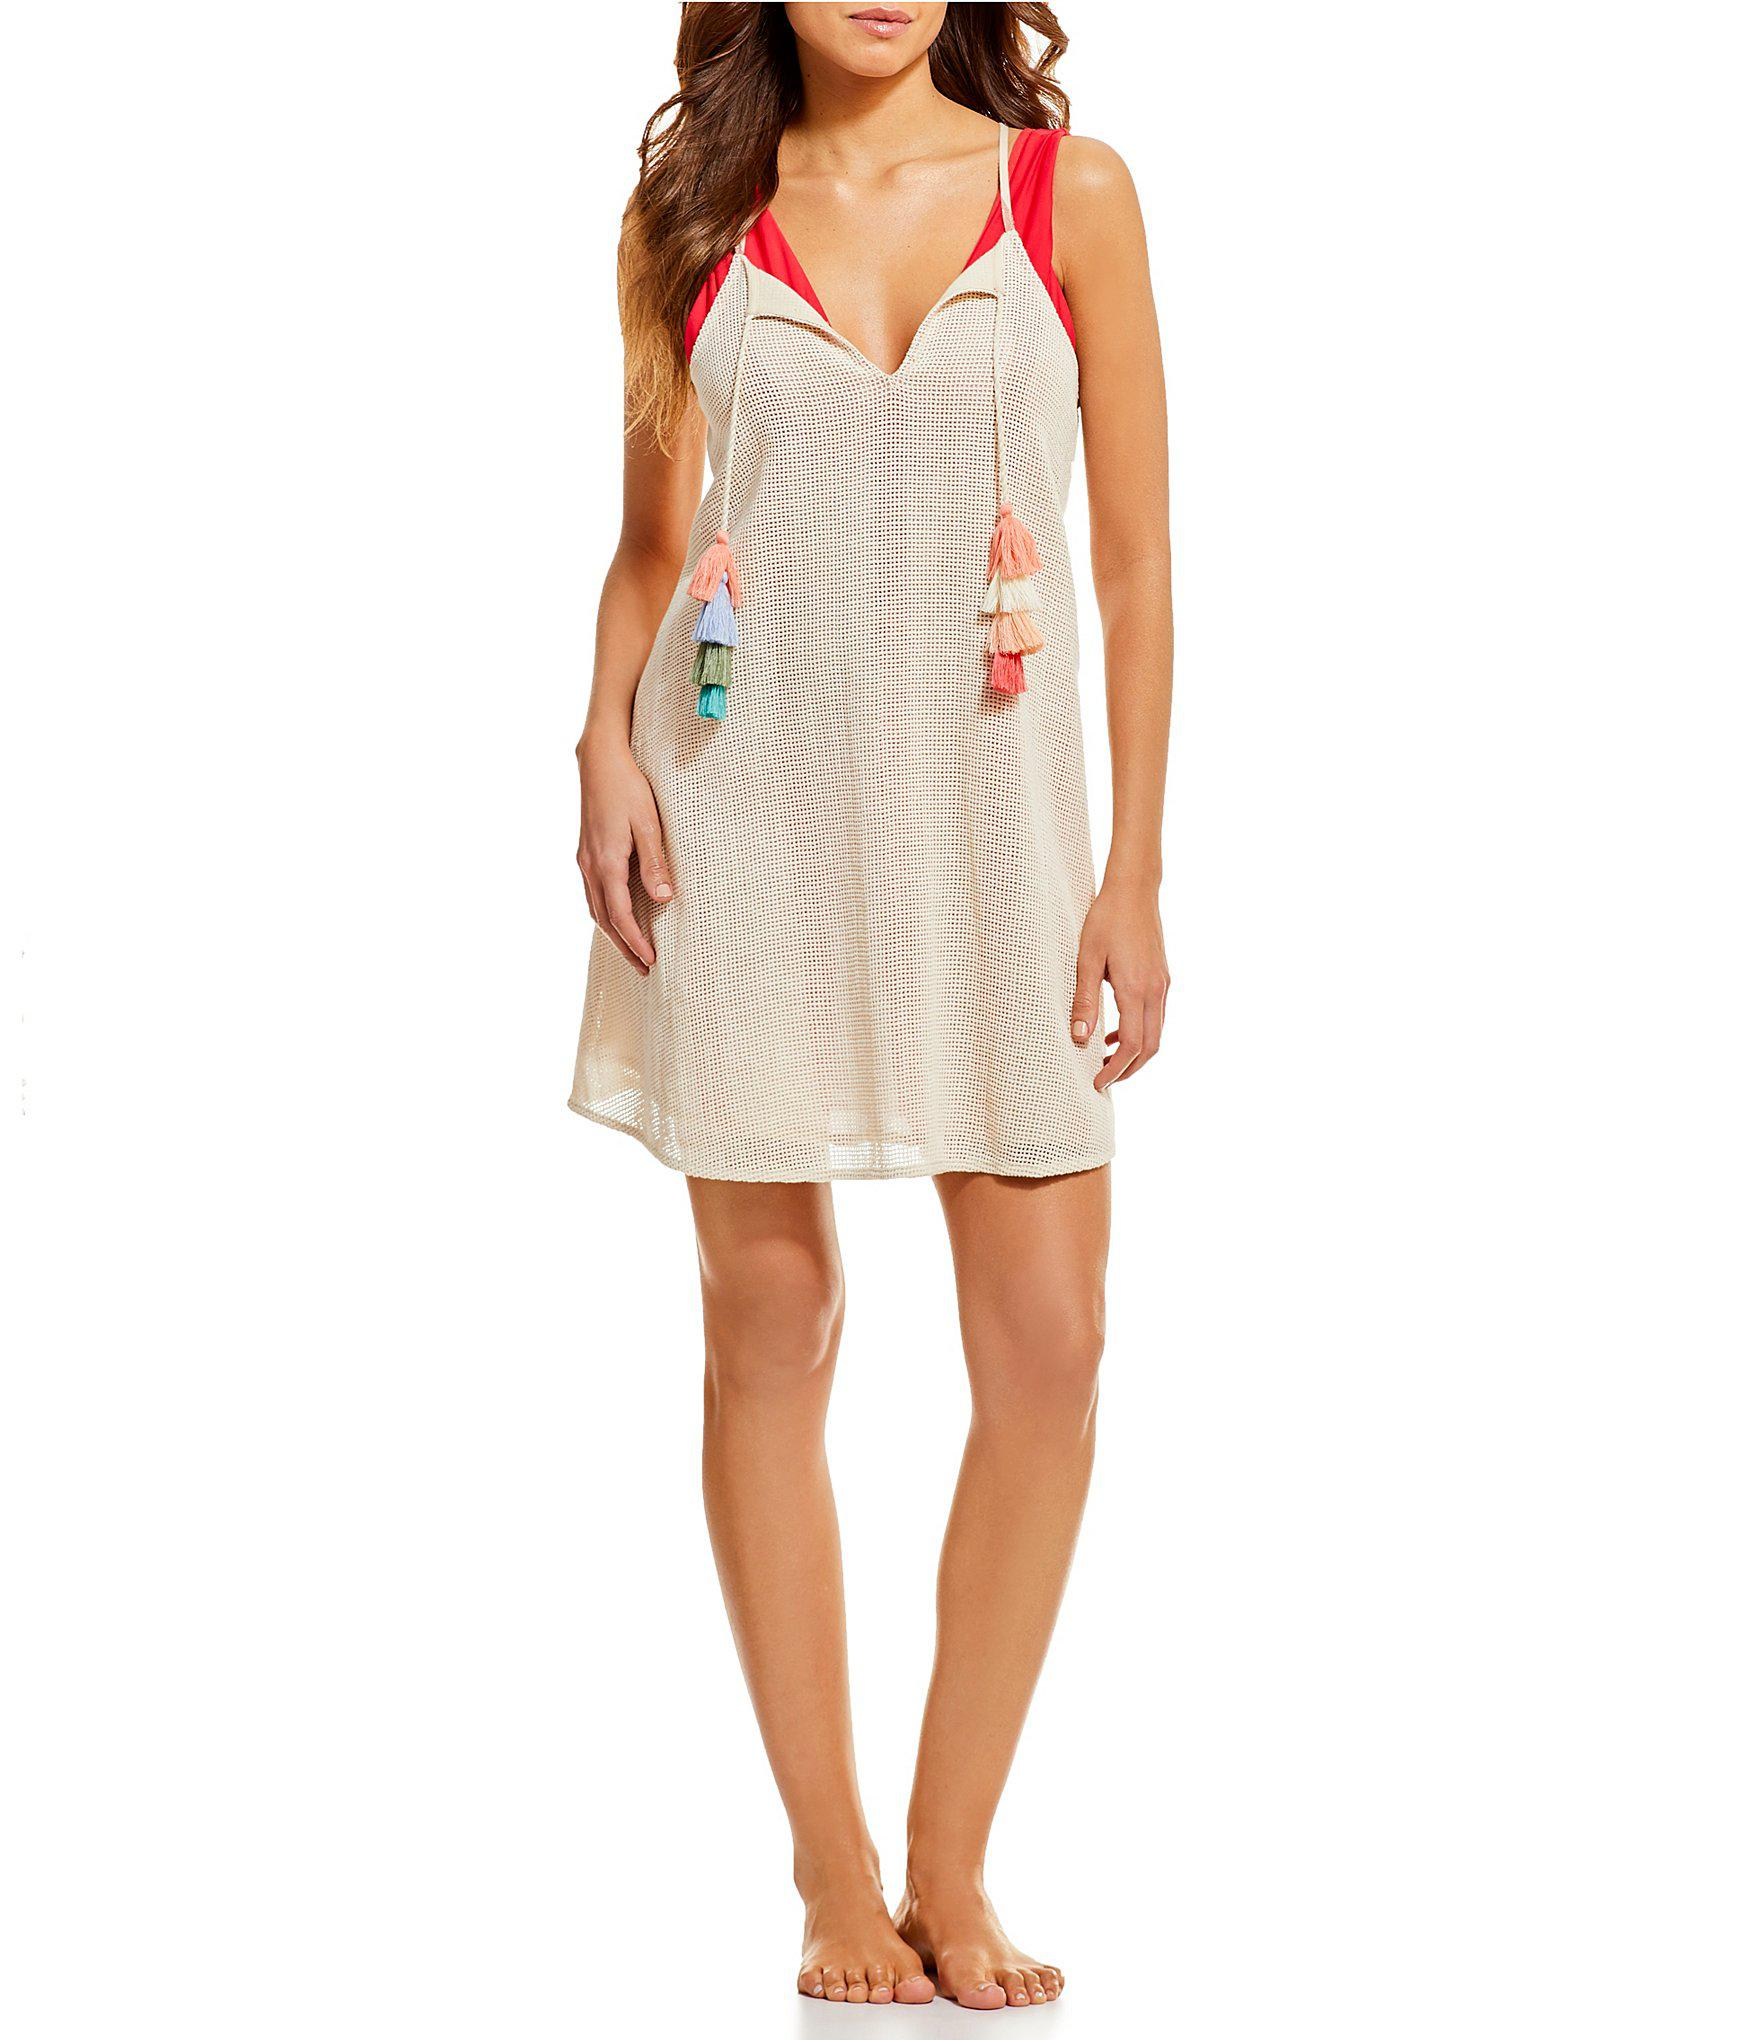 2983ea8246 Gianni Bini Mesh Swing Dress Swimsuit Cover-up in Natural - Lyst